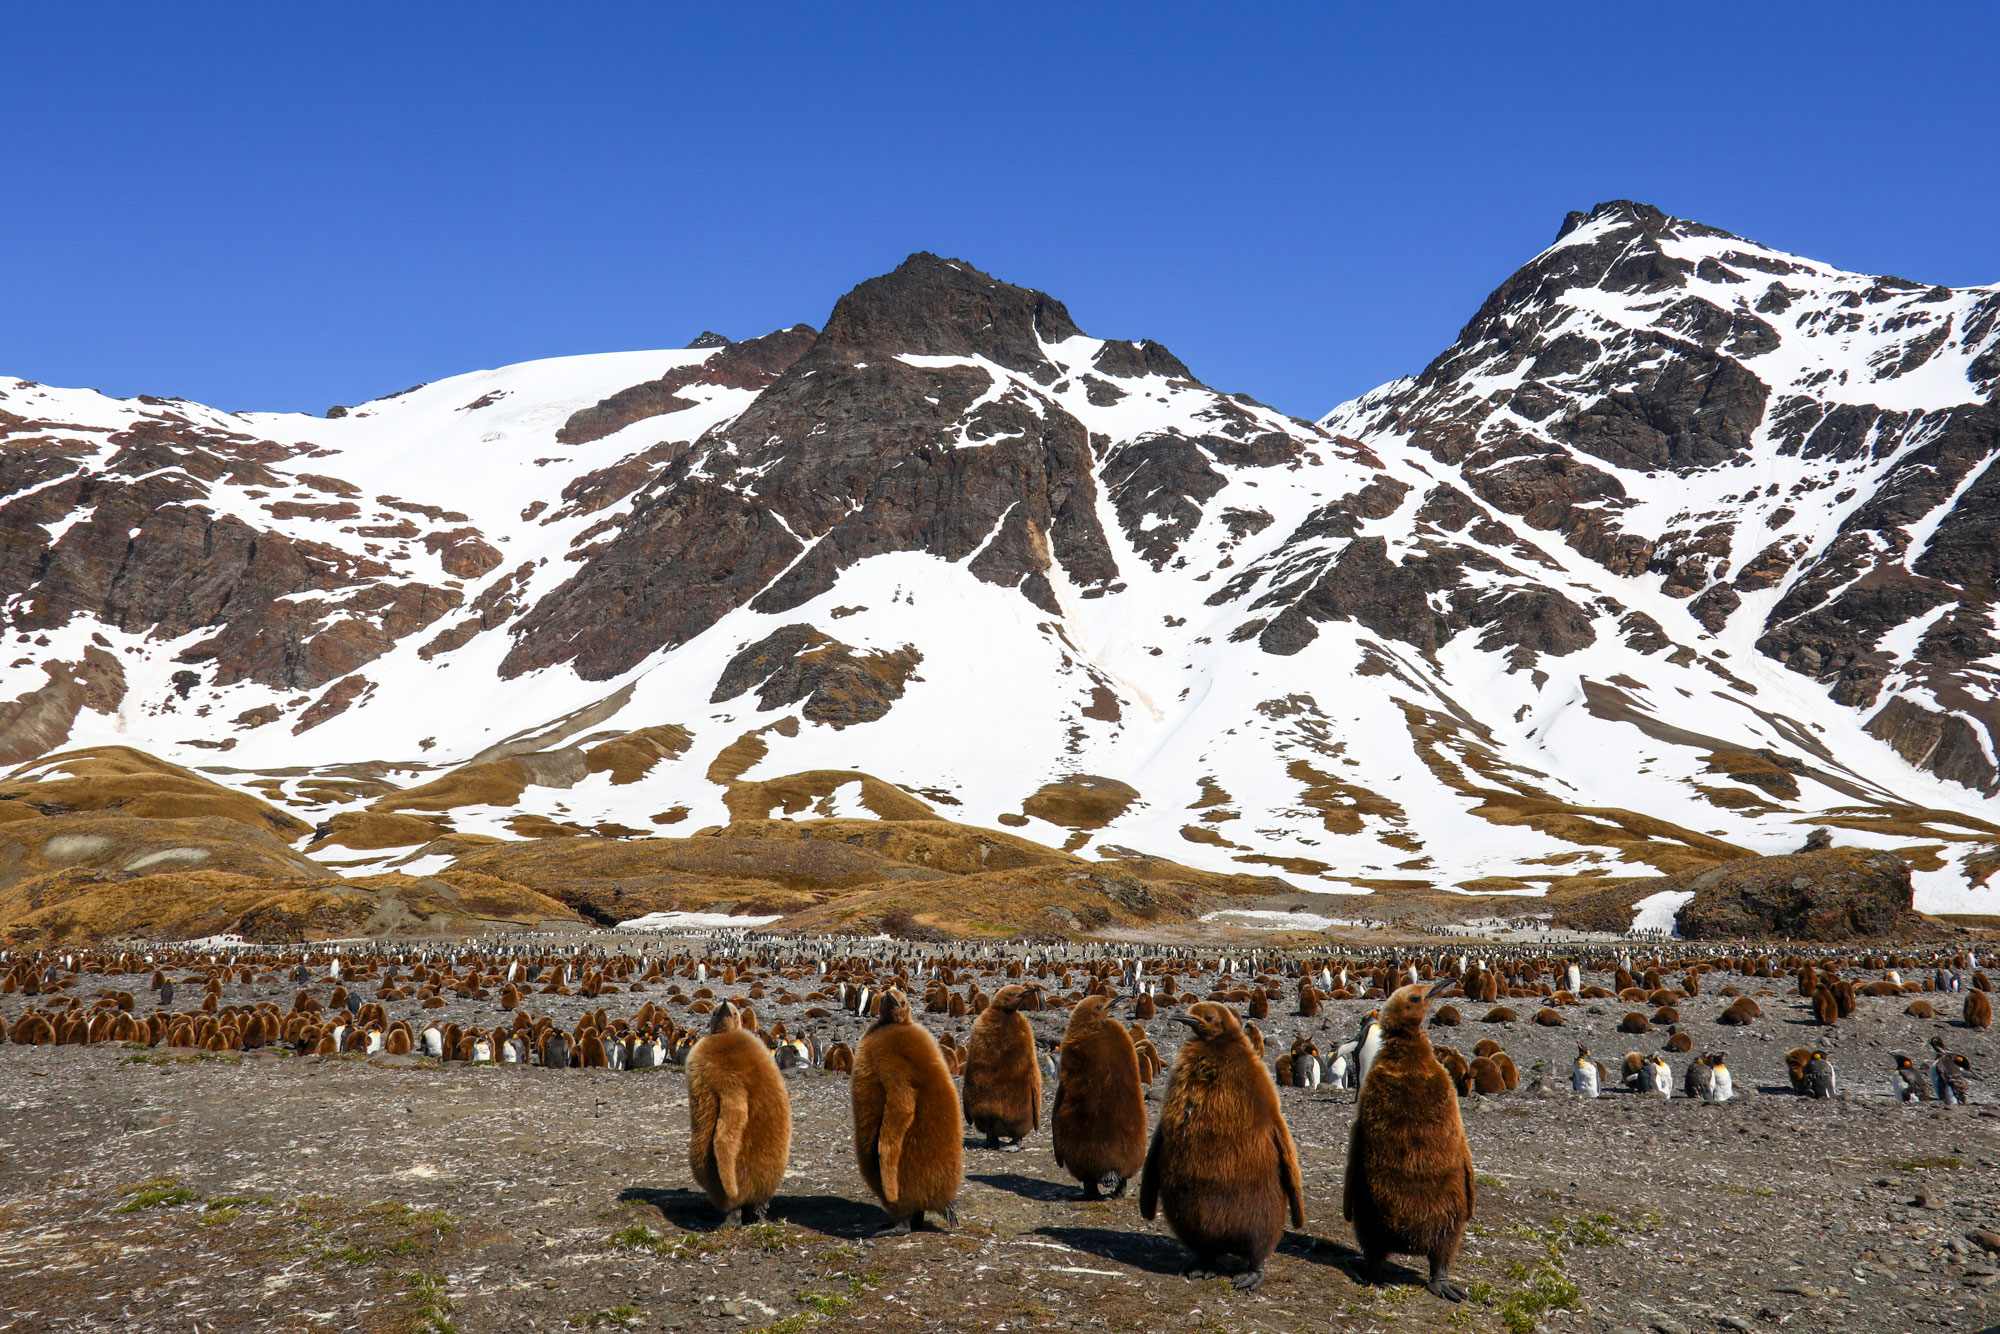 Six brown King Penguins stand on a rocky coast, with many dozens of additional penguins in the background. Behind them stand snowy mountains under a bright blue sky.